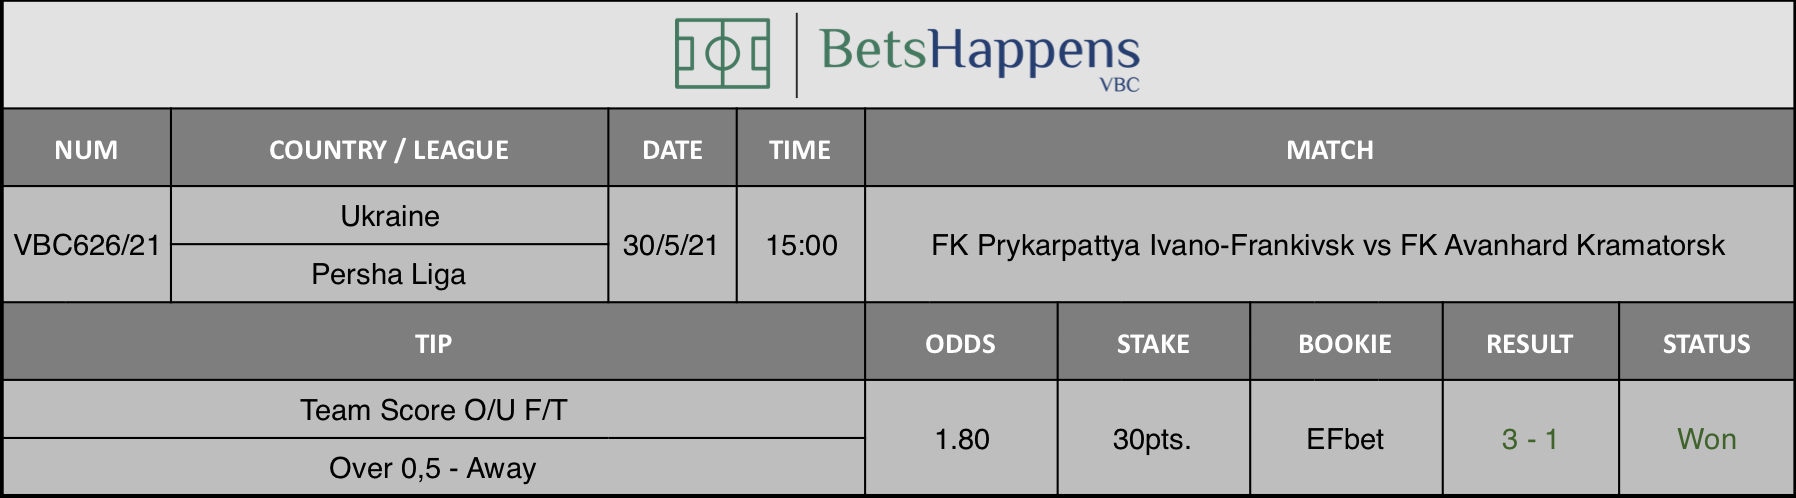 Results of our tip for the FK Prykarpattya Ivano-Frankivsk vs FK Avanhard Kramatorsk match where Team Score O/U F/T Away - Over 0,5 is recommended.